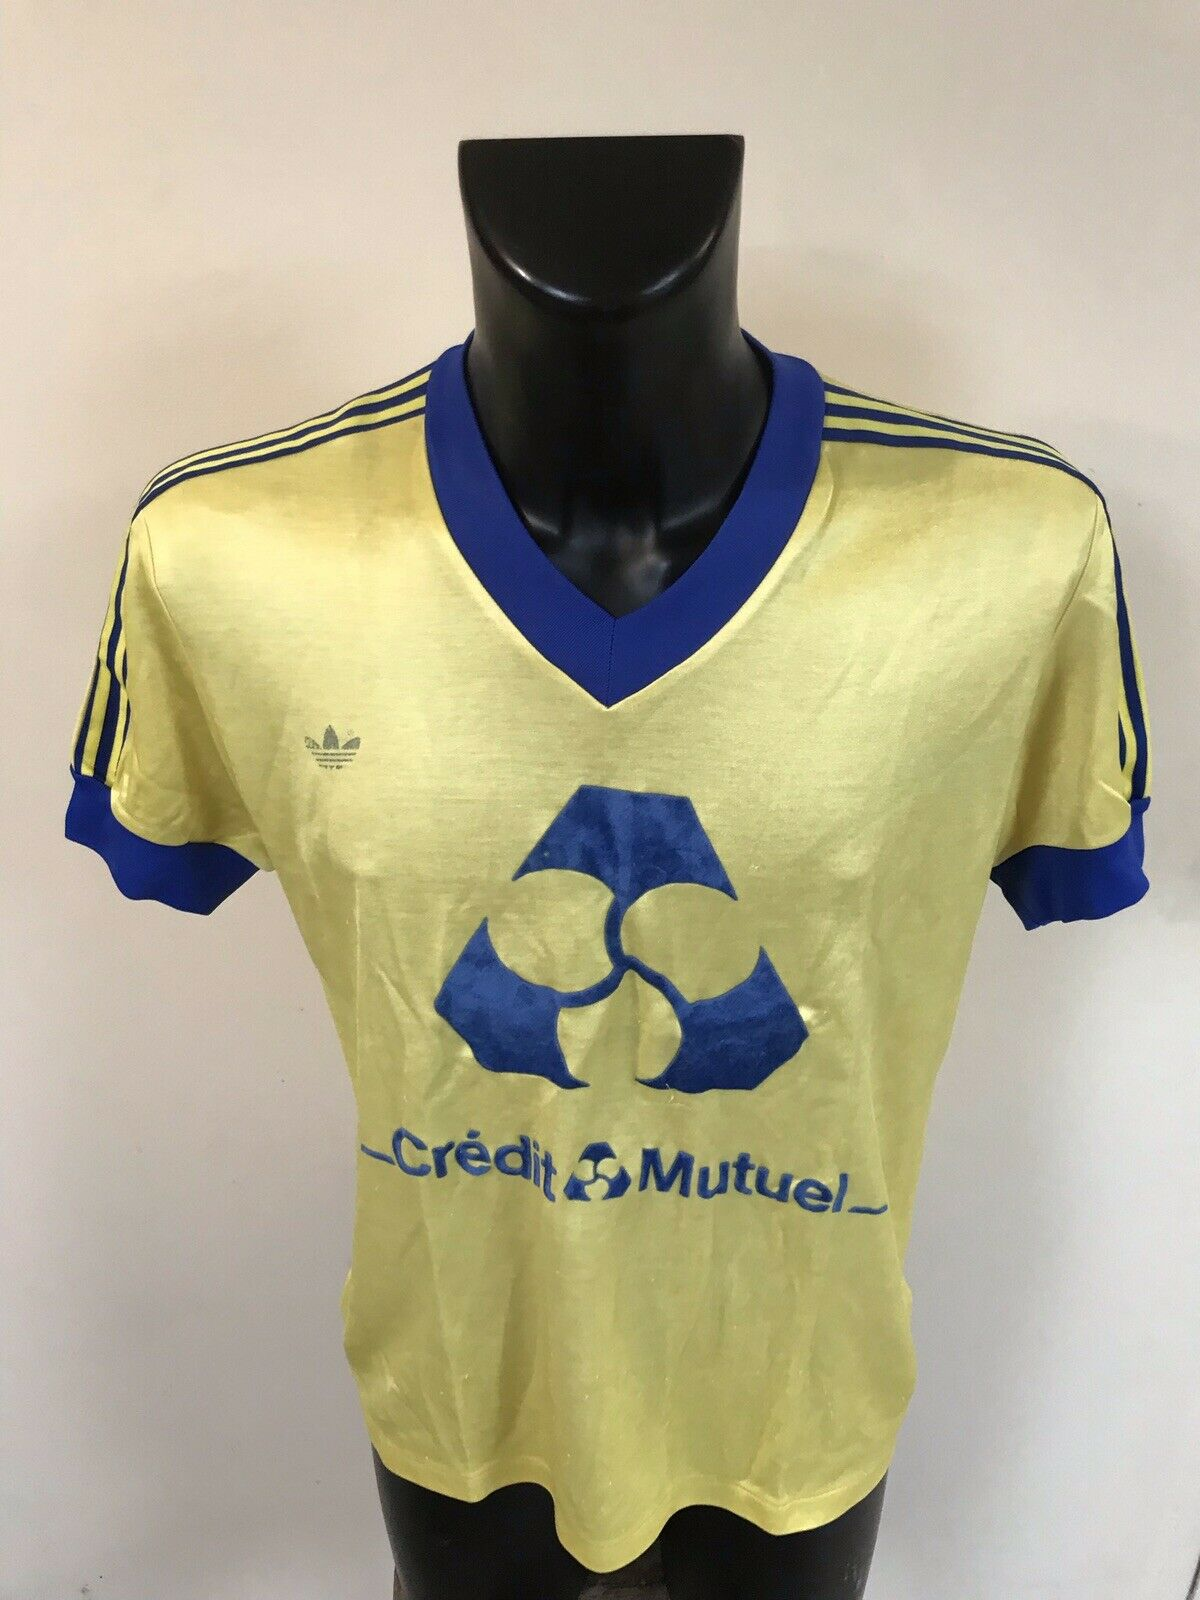 Maillot Foot Ancien Credit Mutuel Numero 6 Taille 4/5